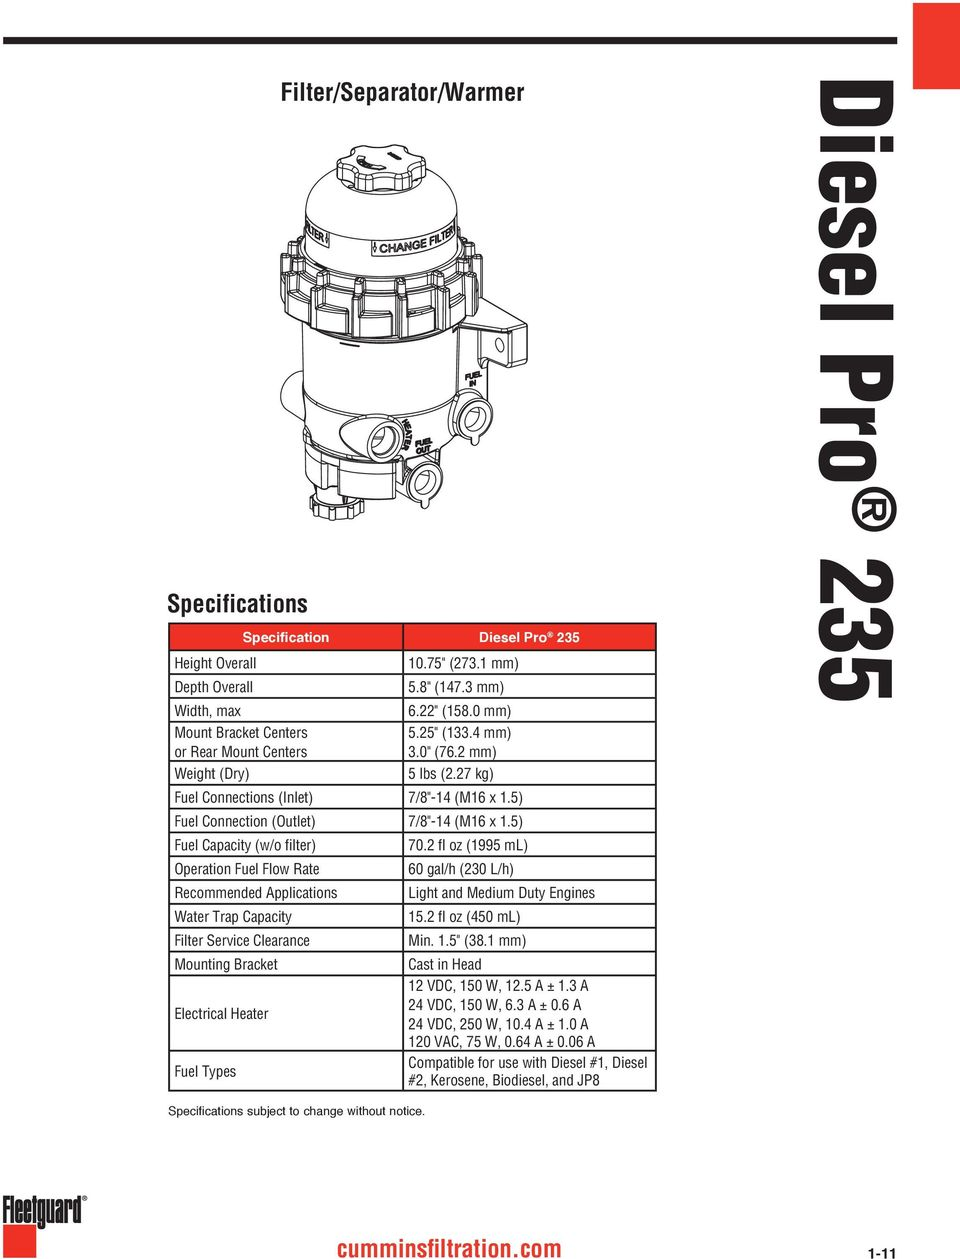 1 Fuel Filters And Water Separators Pdf Fleetguard For Diesel 2 Fl Oz 199 Ml Operation Flow Rate 6 Gal H